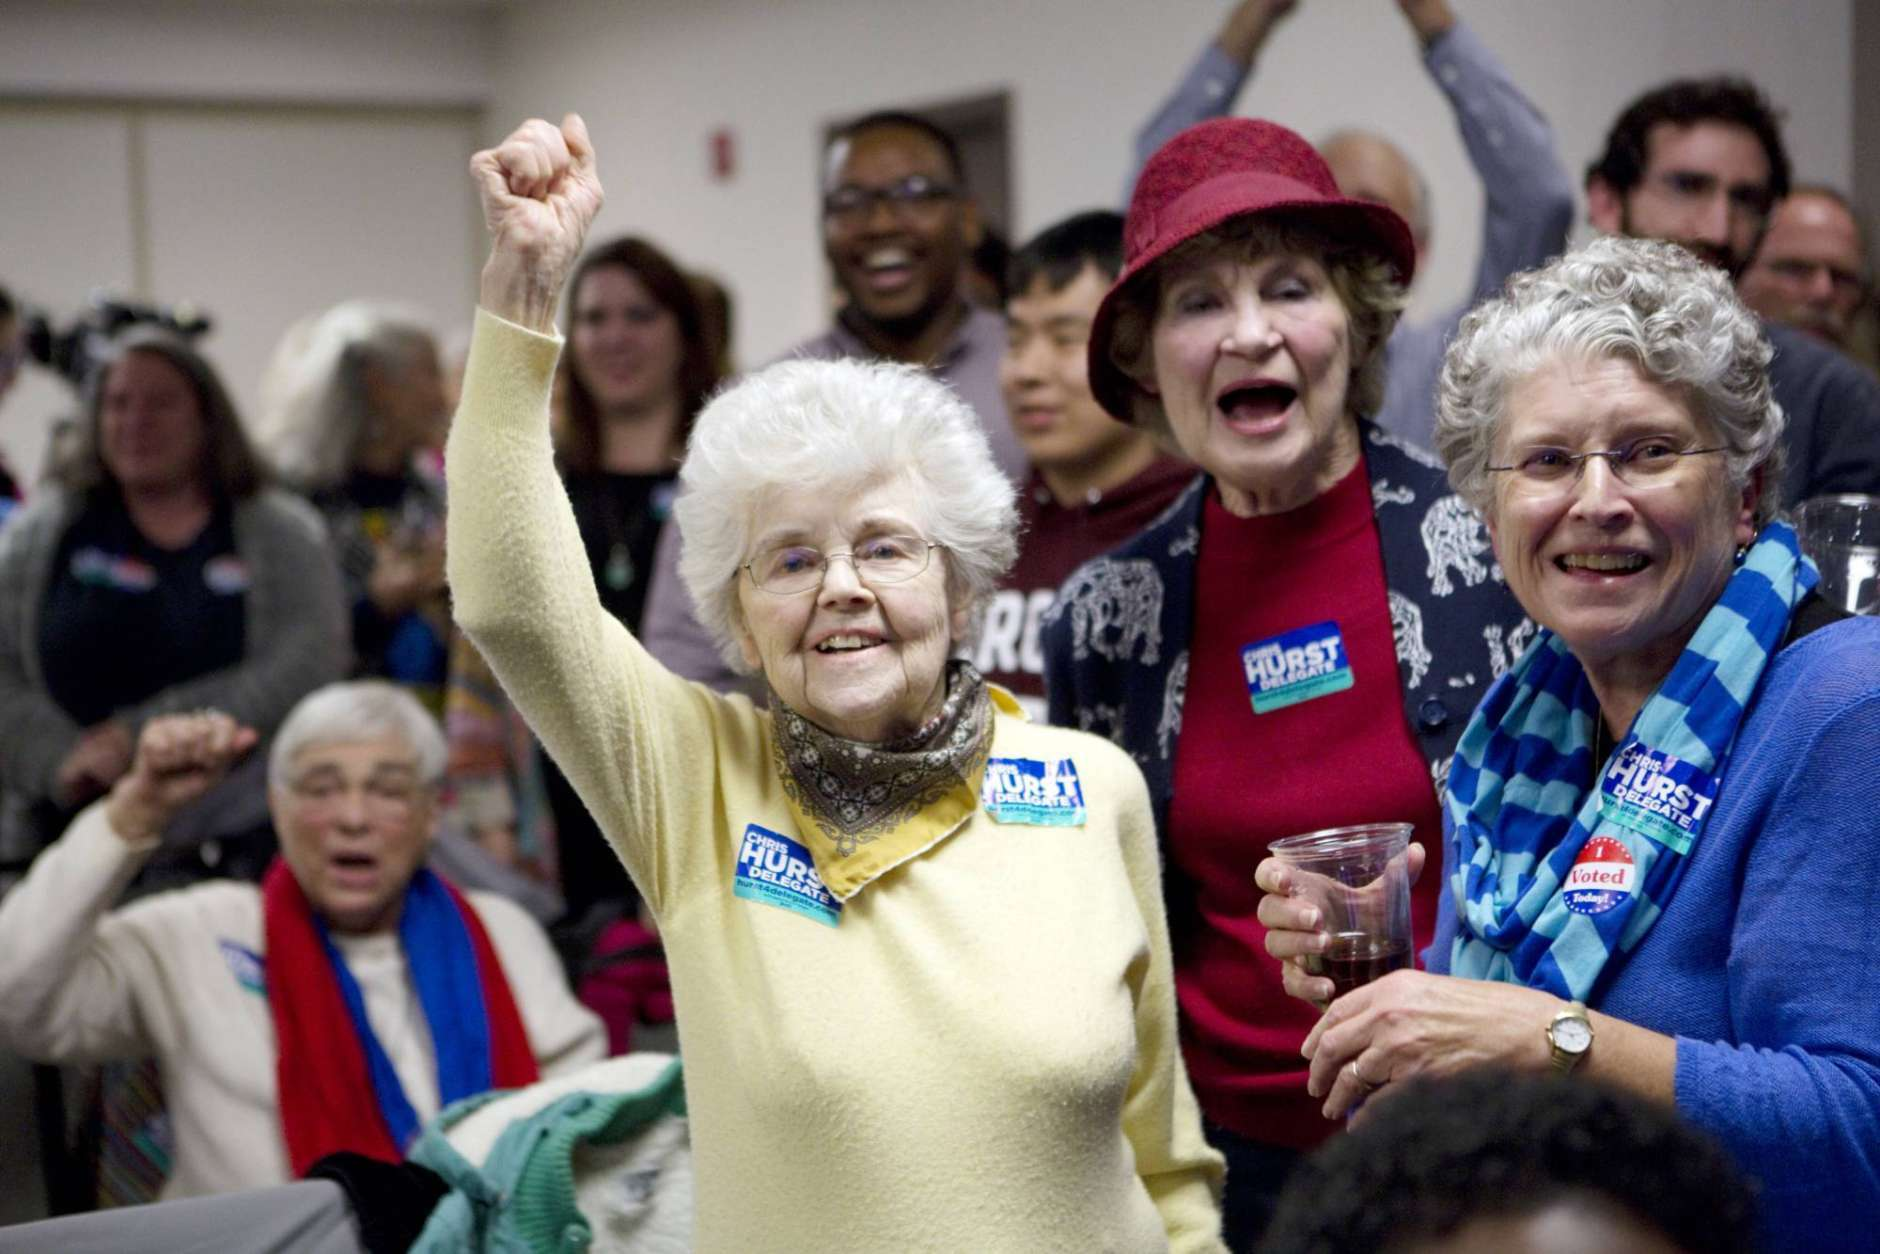 Julia Lewis, from left, Margaret Ray and Mary Banks celebrate when news breaks that Democrat Chris Hurst defeated Republican incumbent Joseph Yost to win House District 12 on Tuesday, Nov. 7, 2017, in Blacksburg, Va.  (Heather Rousseau/The Roanoke Times via AP)